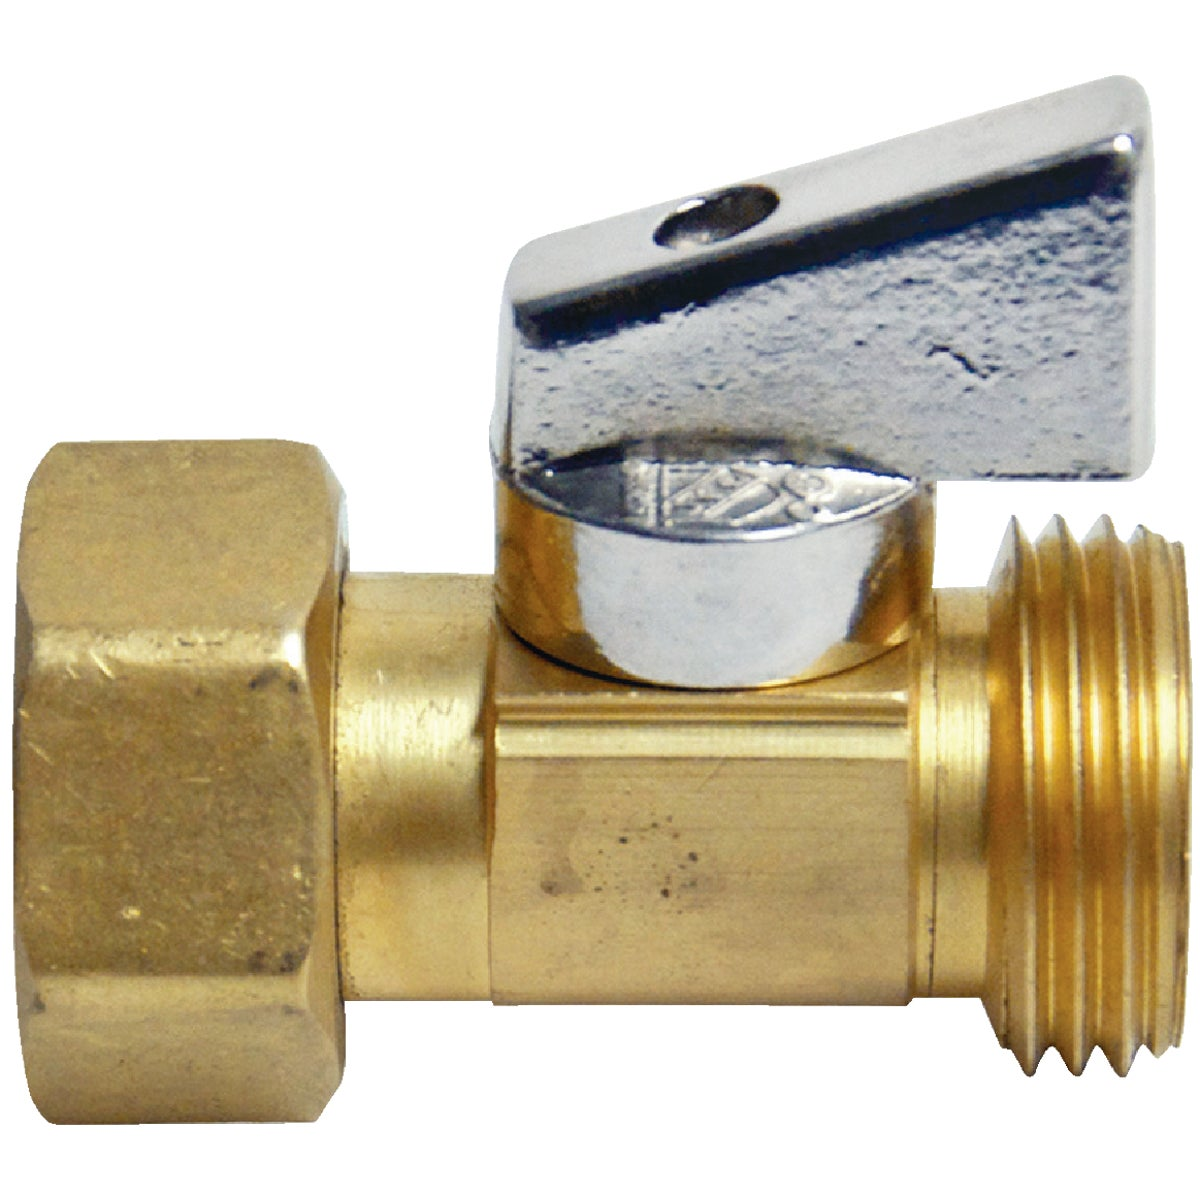 GARDEN HOSE BALL VALVE - 59216 by Danco Perfect Match